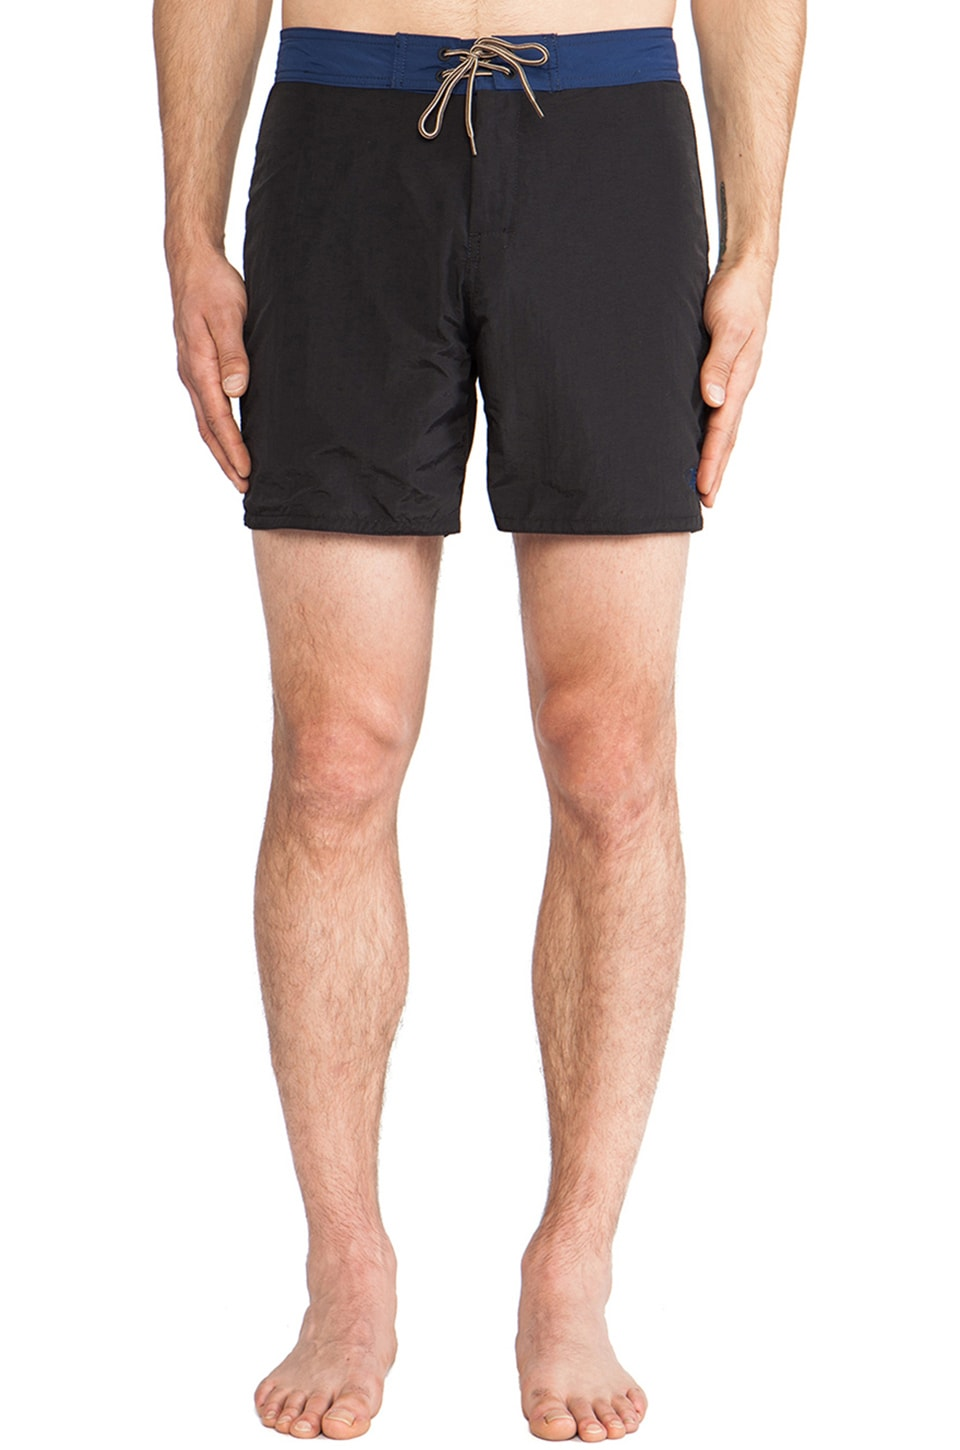 OURS Two Tone Boardshorts in Black & Navy